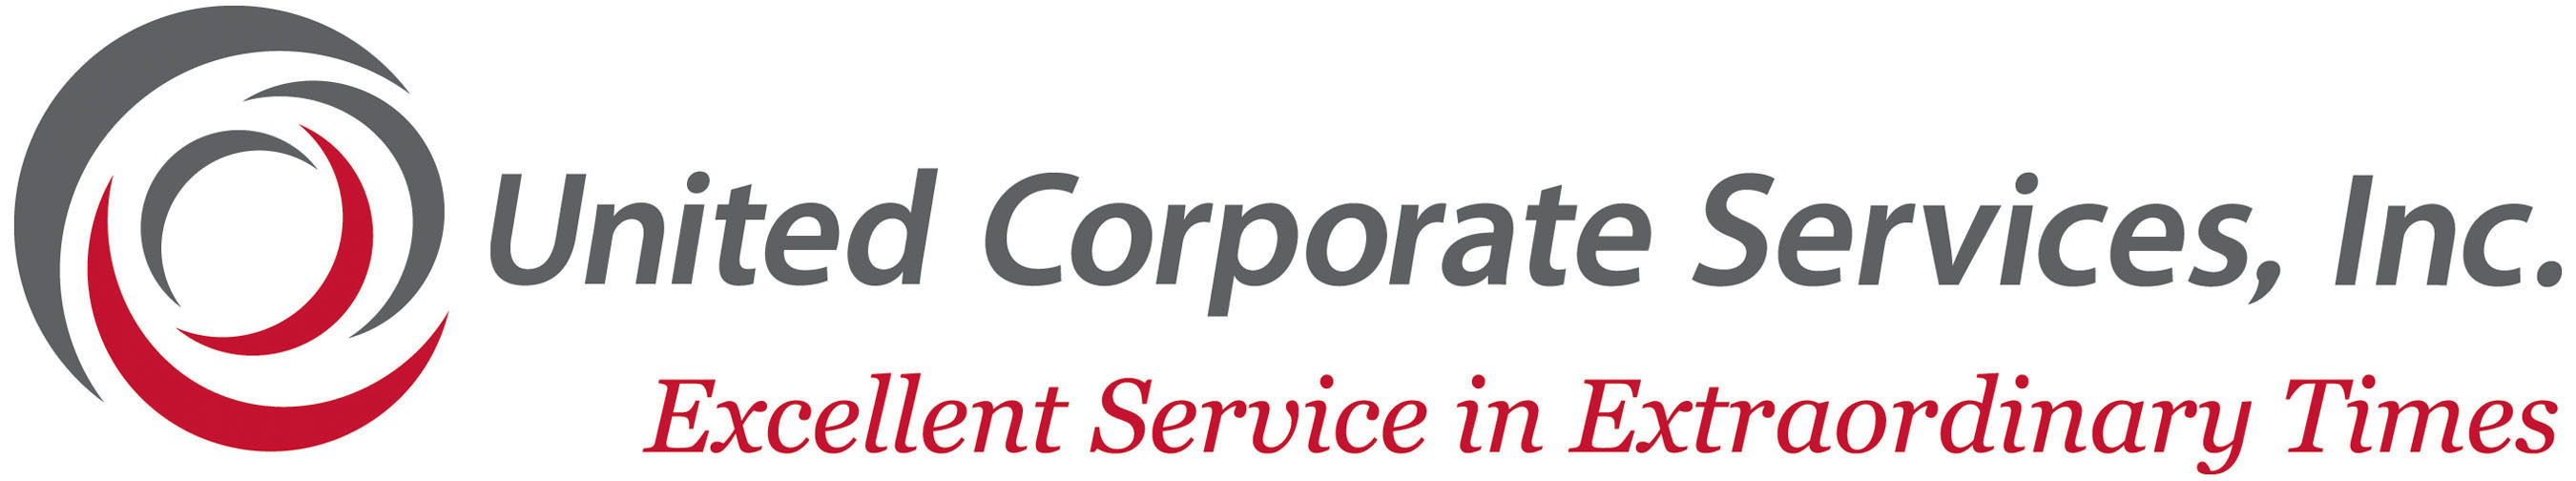 United Corporate Services, Inc. Logo.